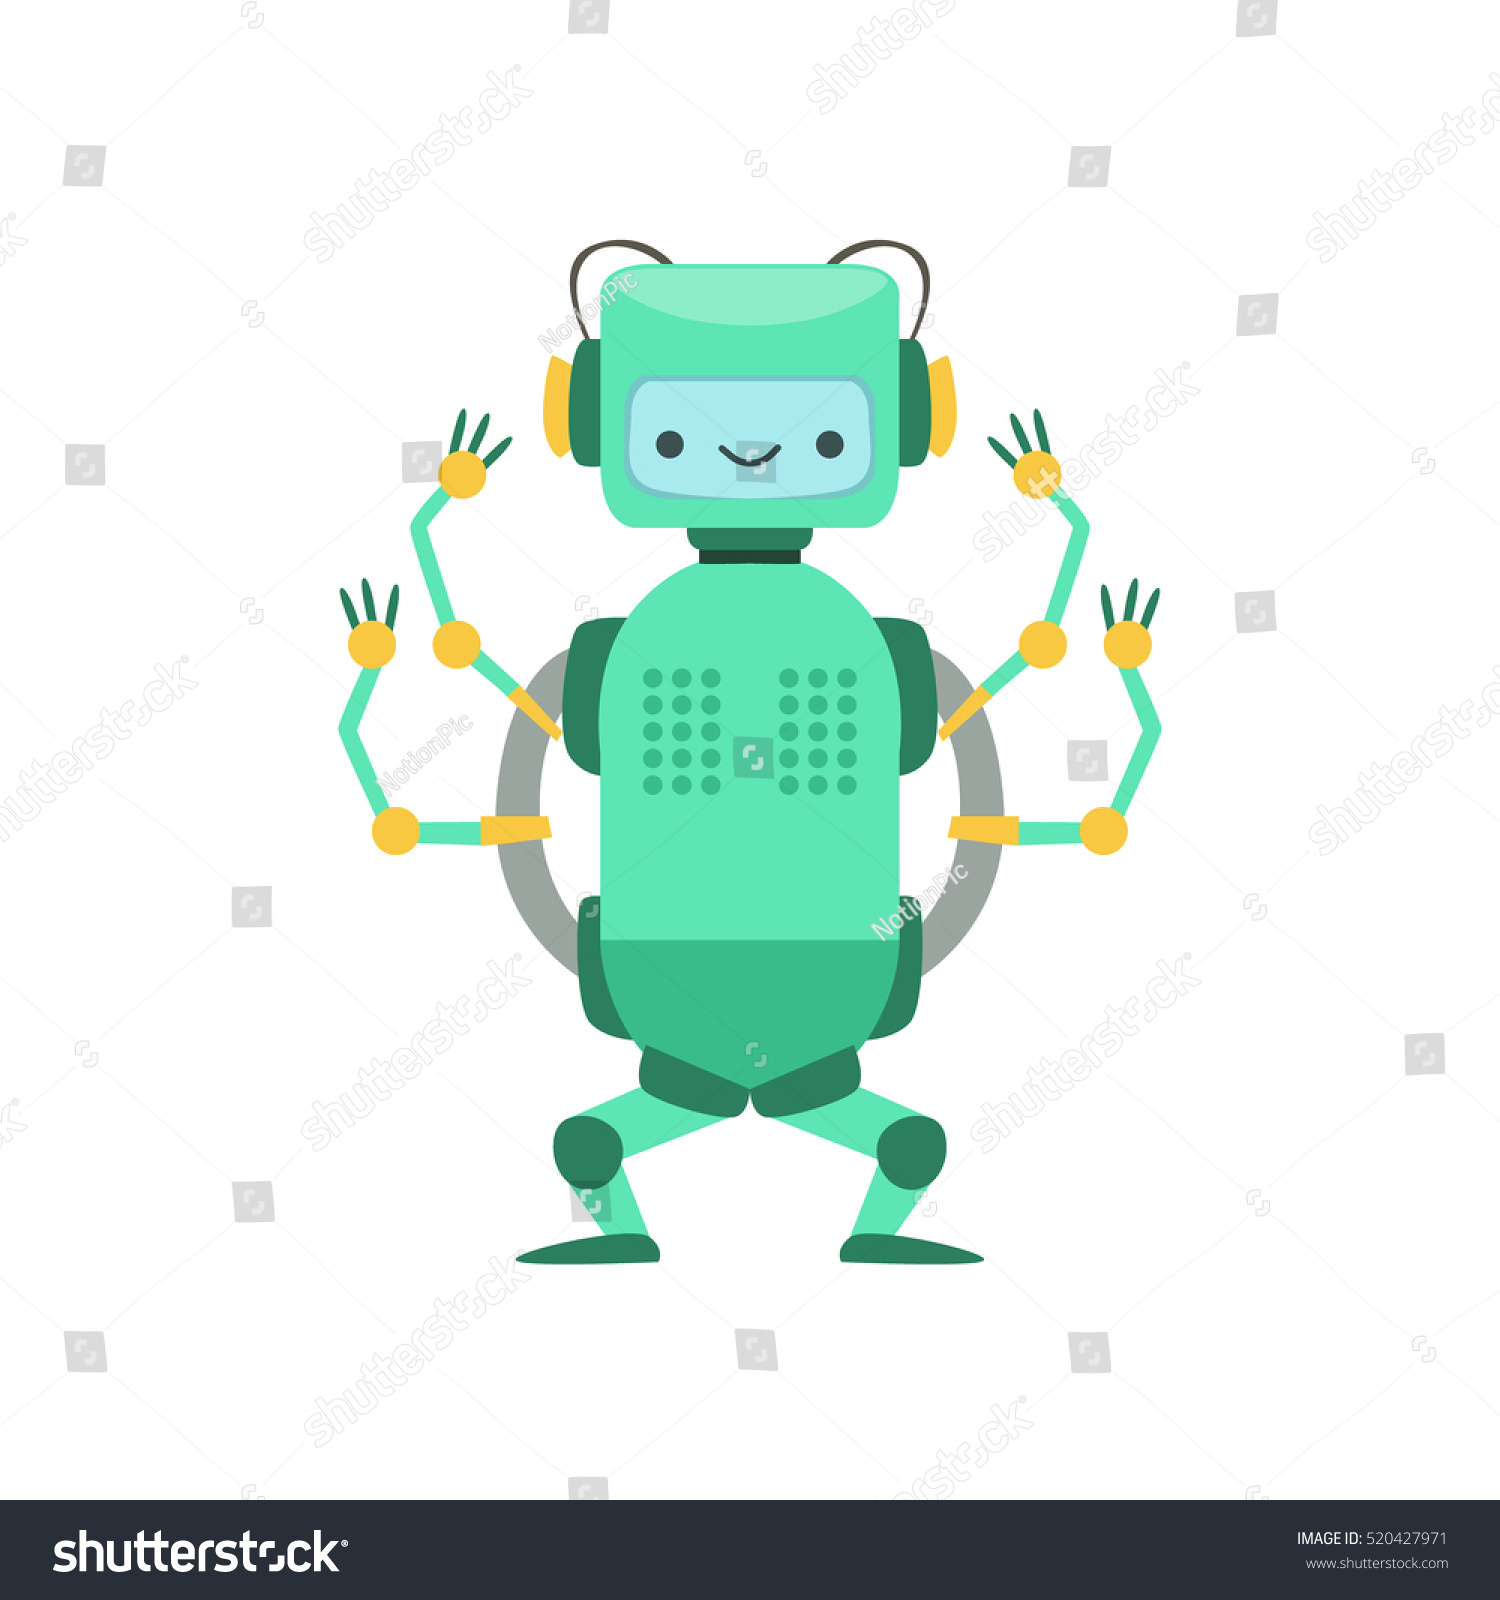 Green Friendly Android Robot Character Four Stock Vector ...  Green Friendly ...